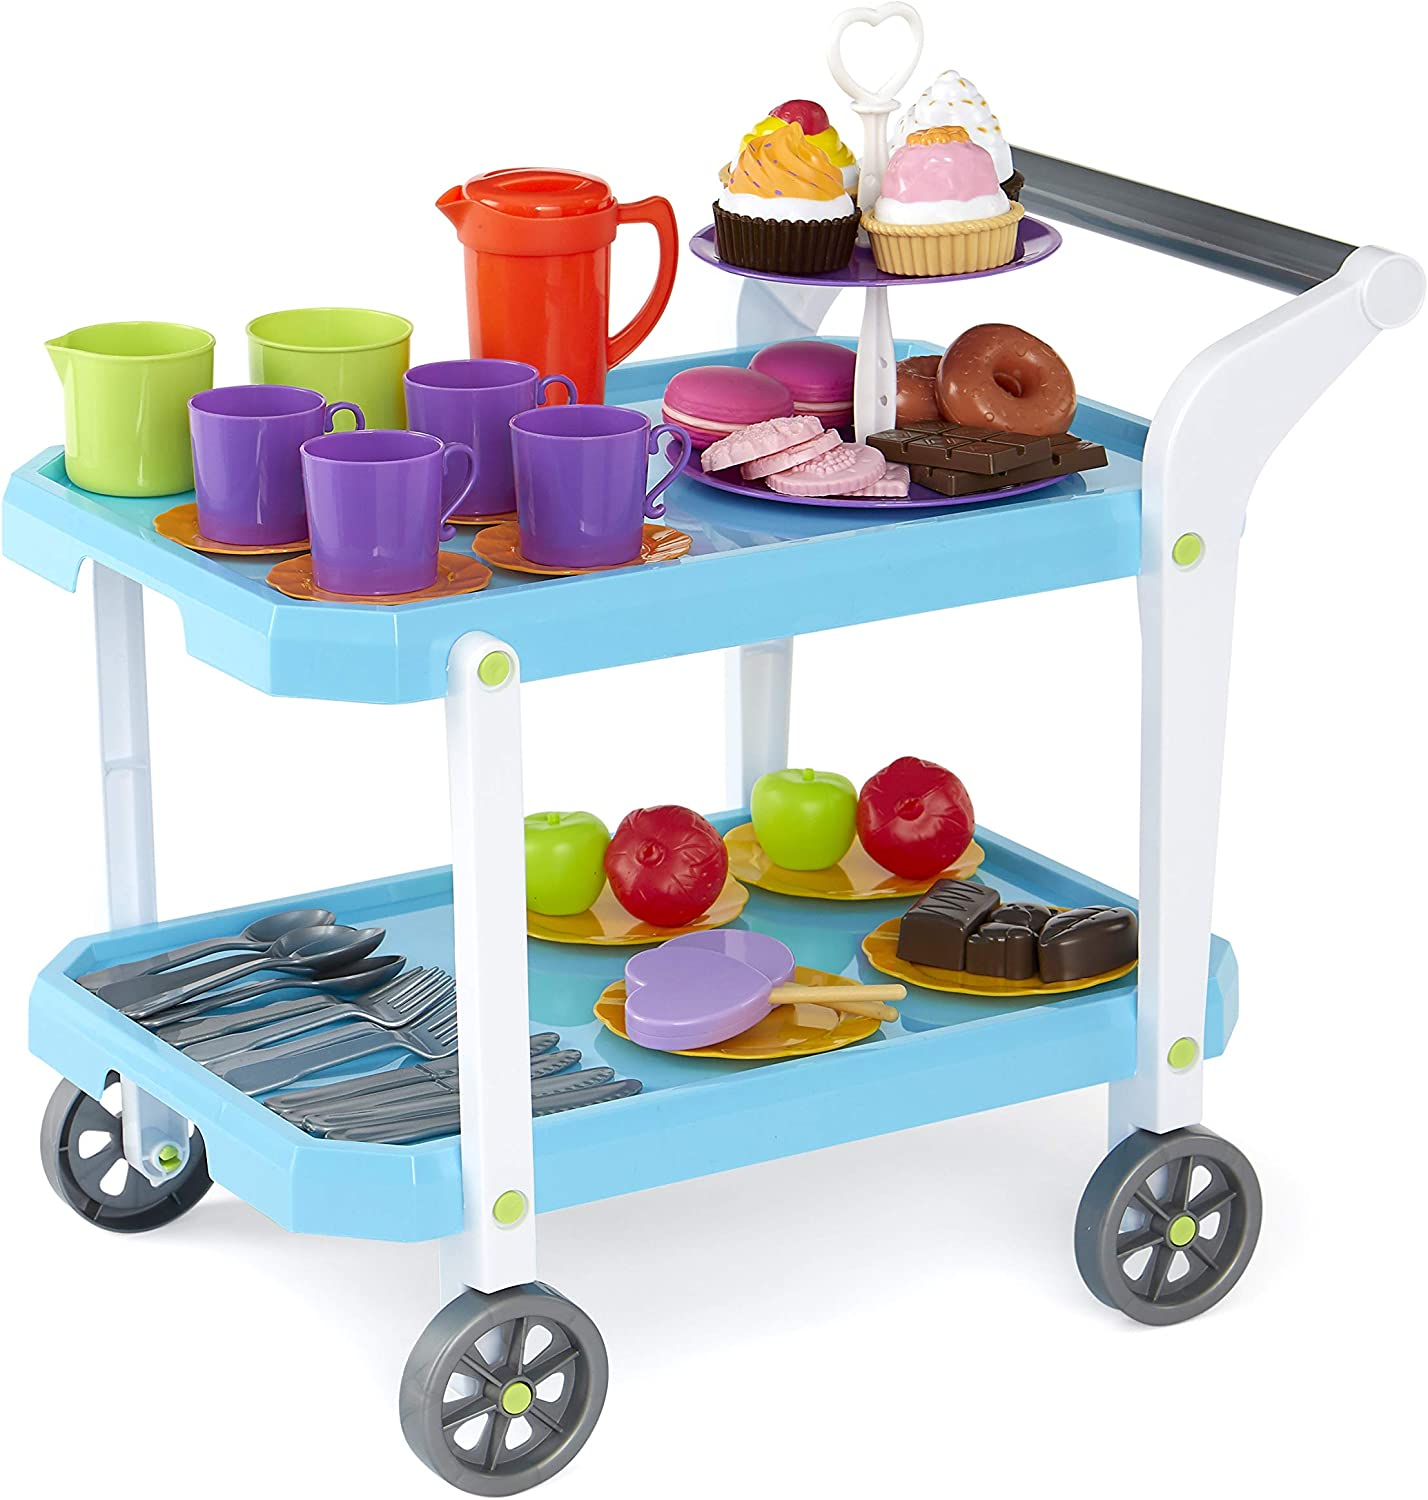 Just Like Home Tea Cart & Dessert, AD20394